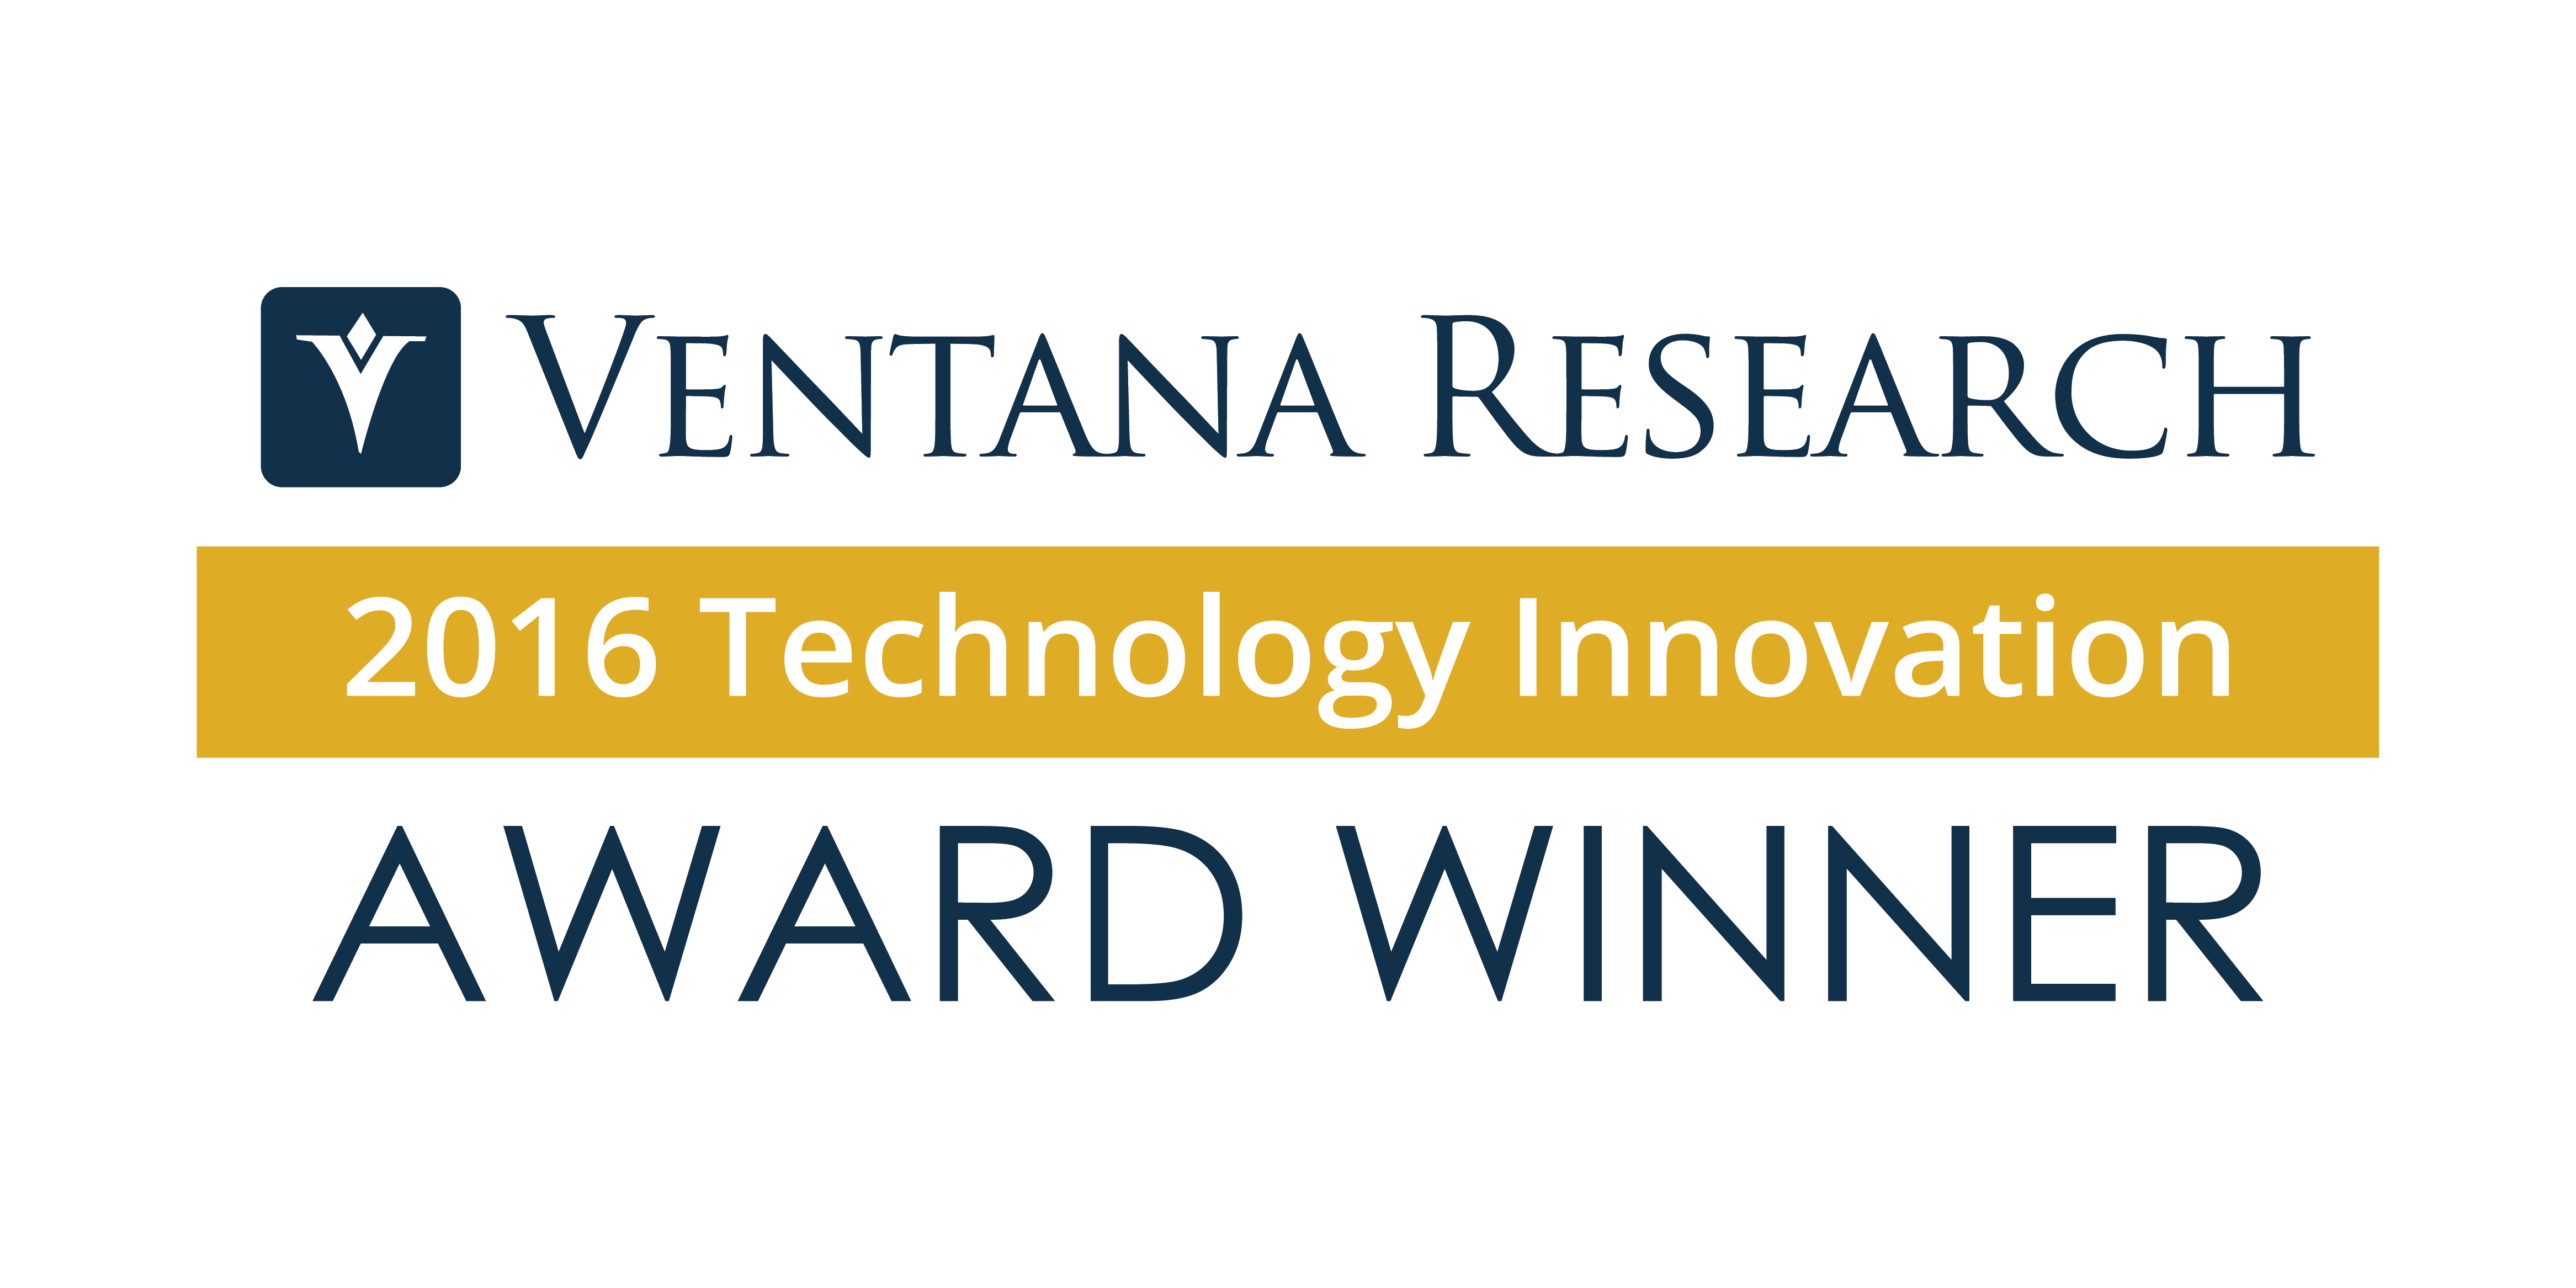 VentanaResearch TechnologyInnovationAwards Winner2016 white